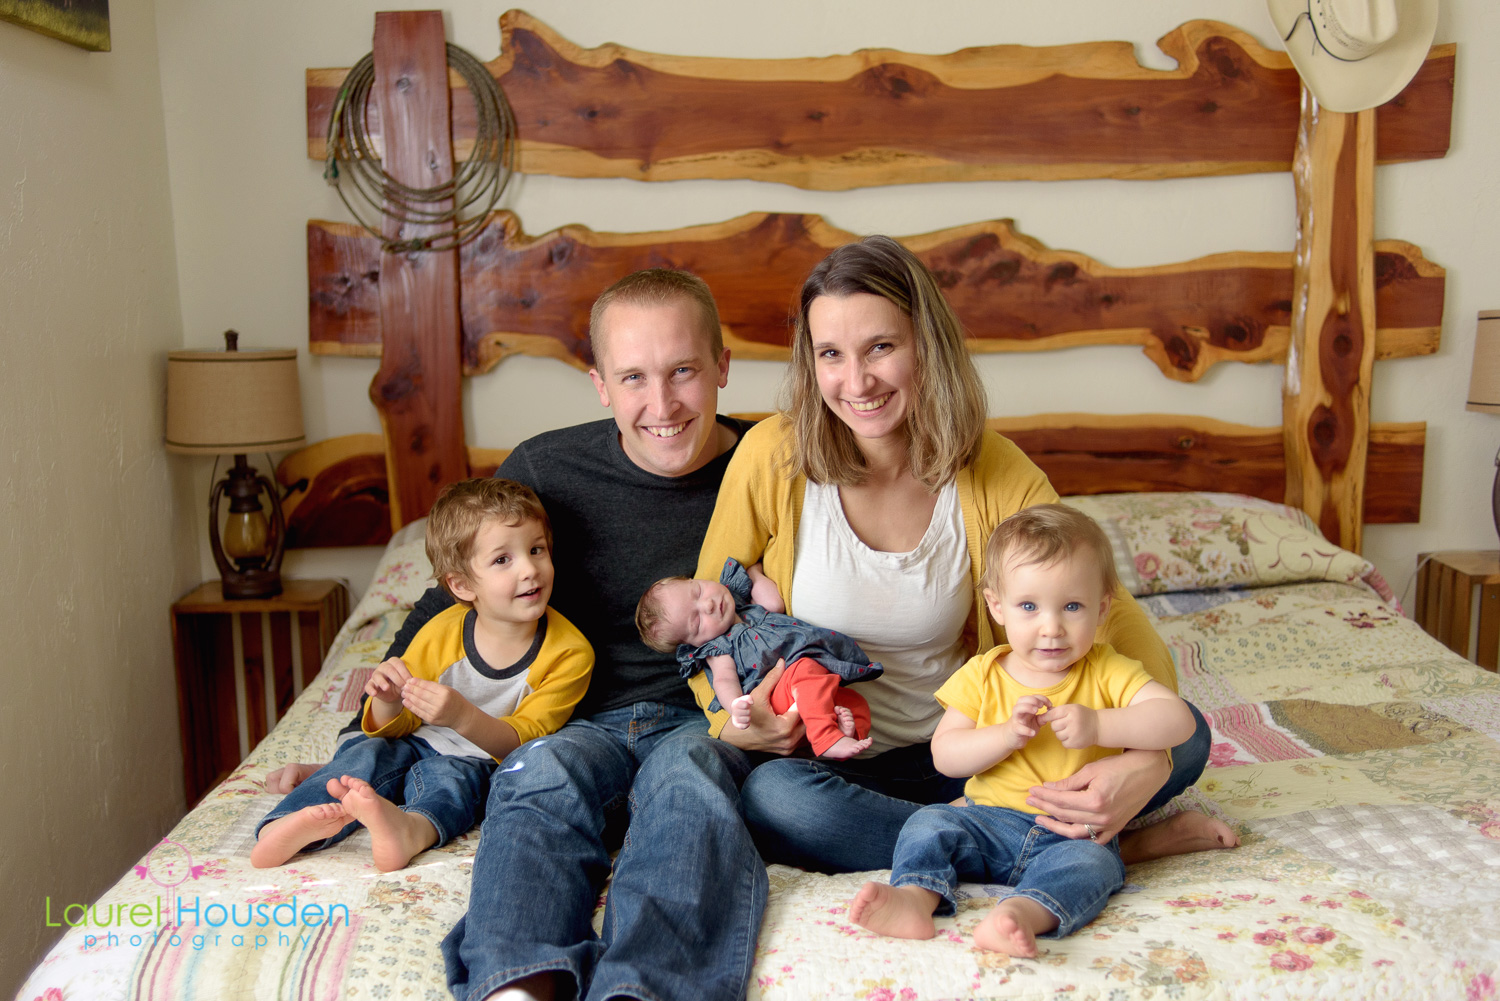 Amanda and Matt with their new expanded family